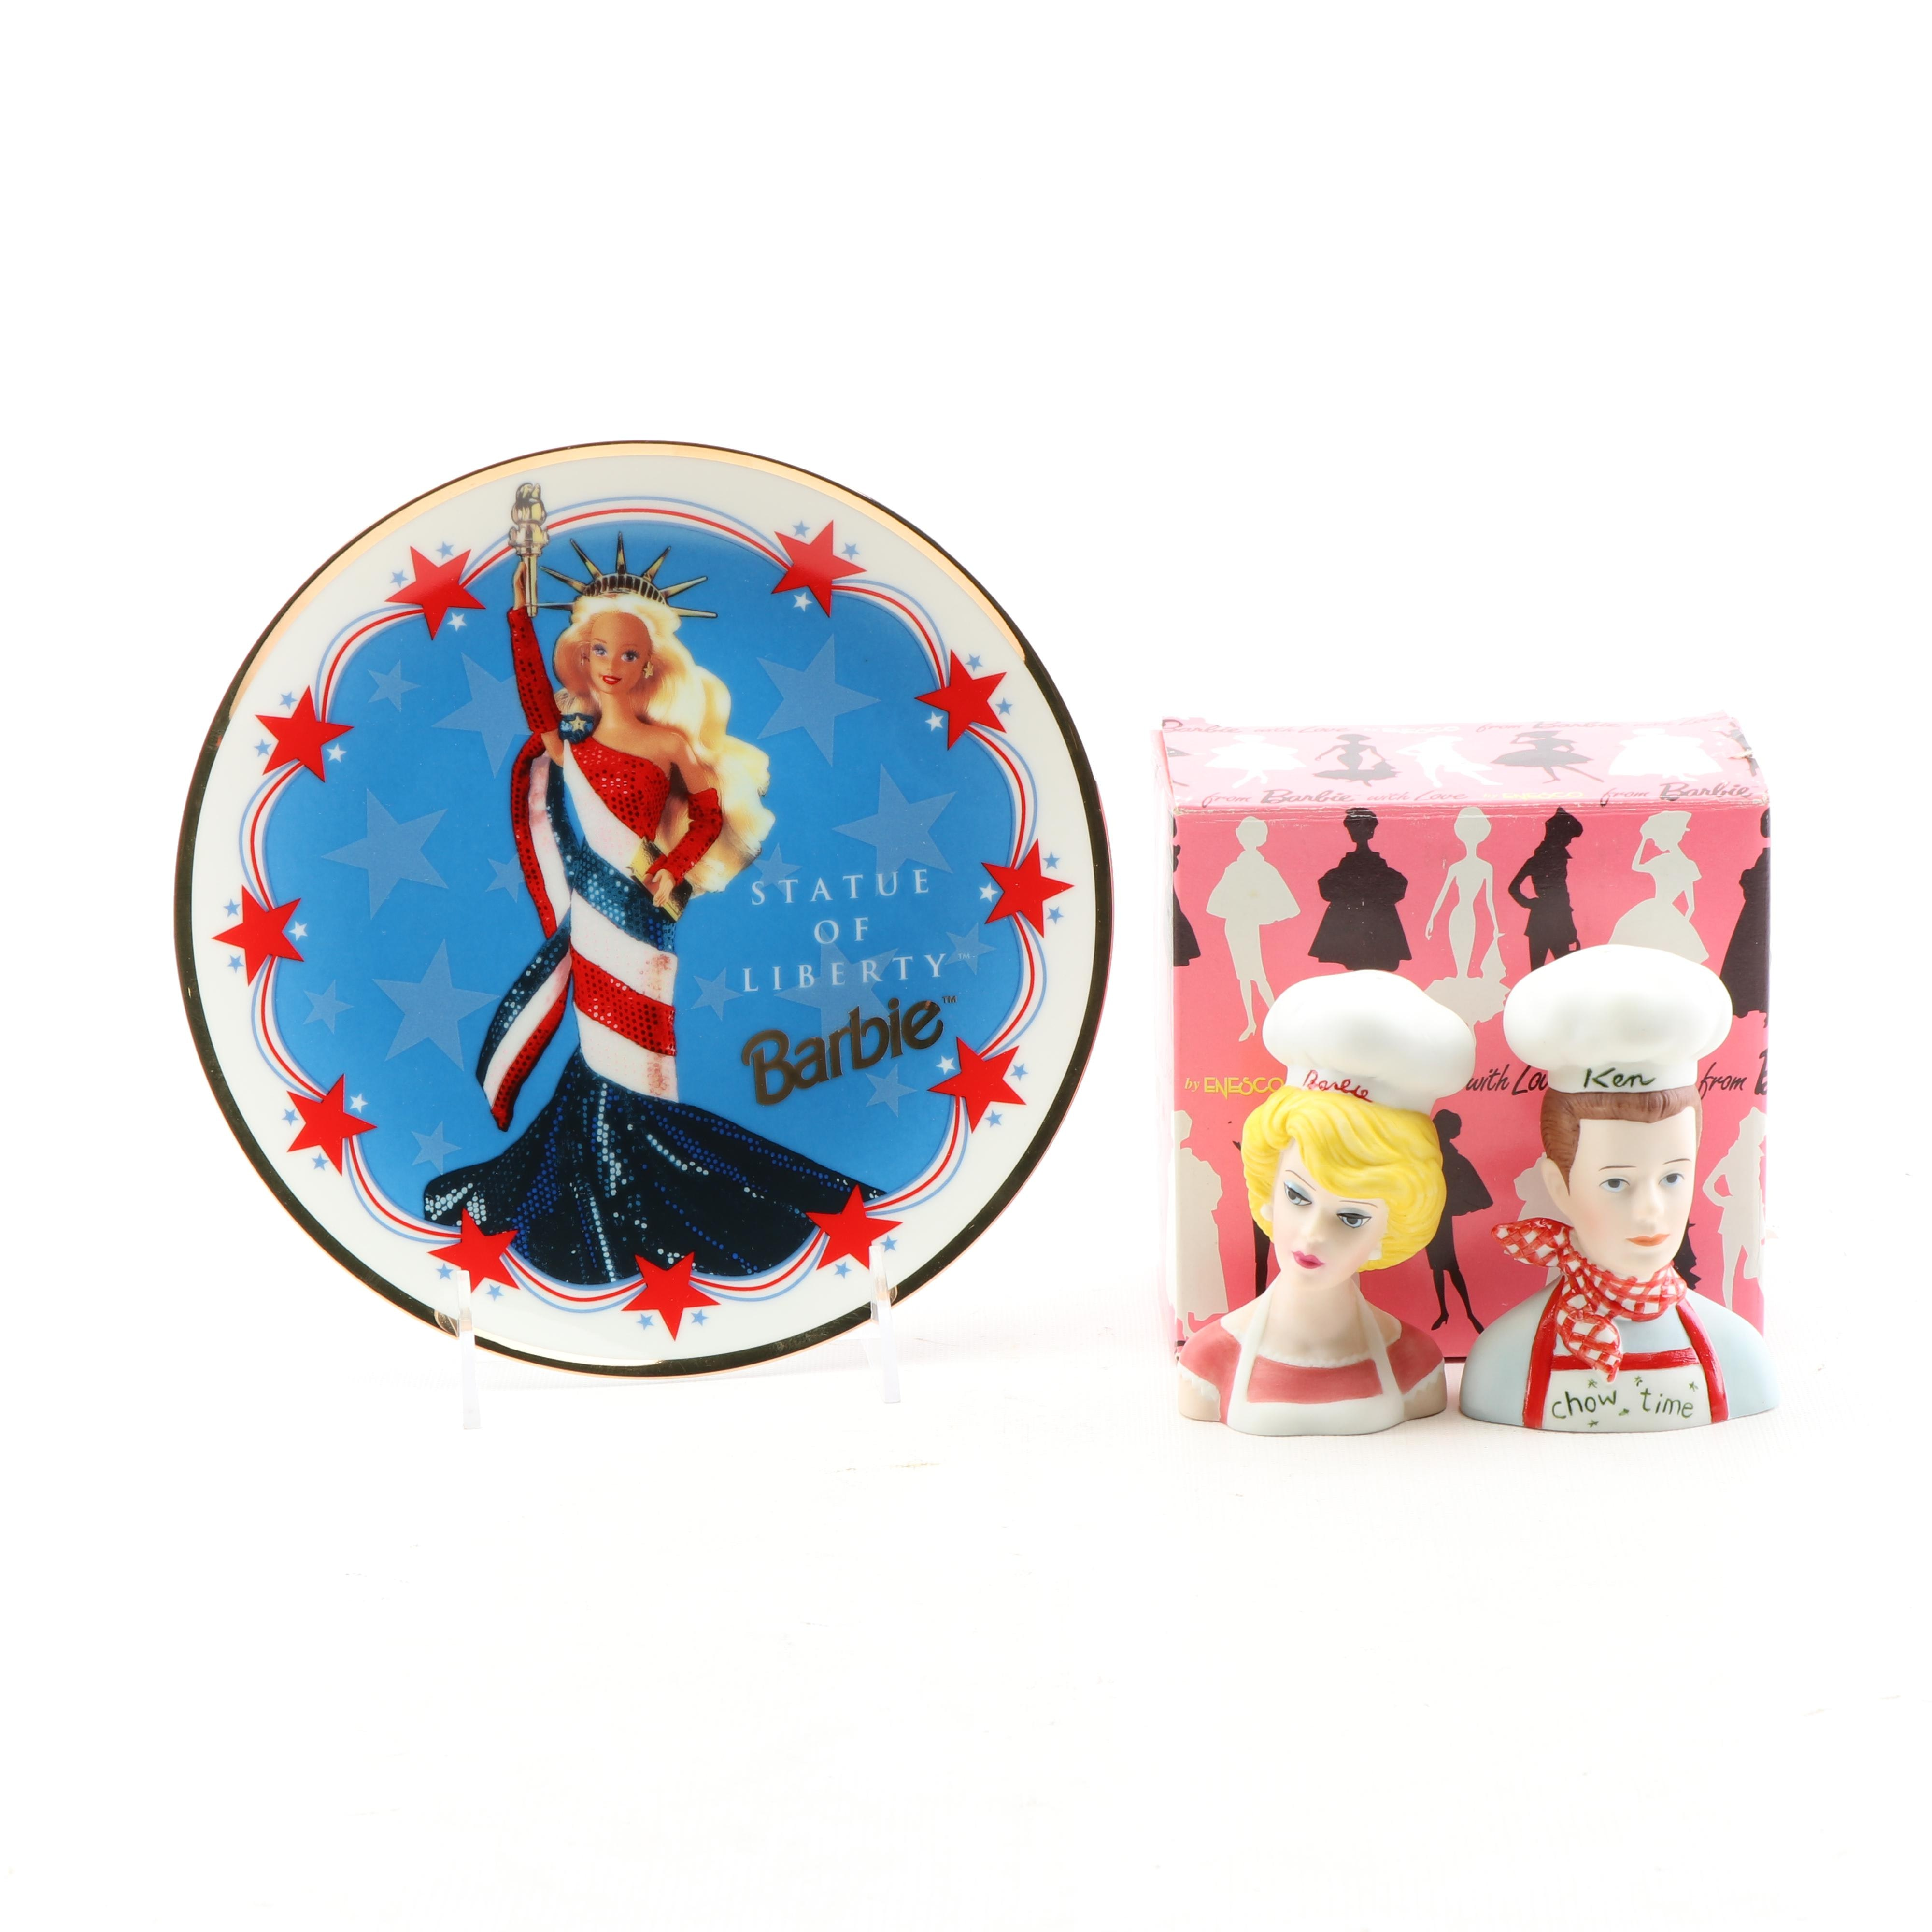 """""""Statue of Liberty Barbie"""" with Barbie and Ken Salt and Pepper Set"""